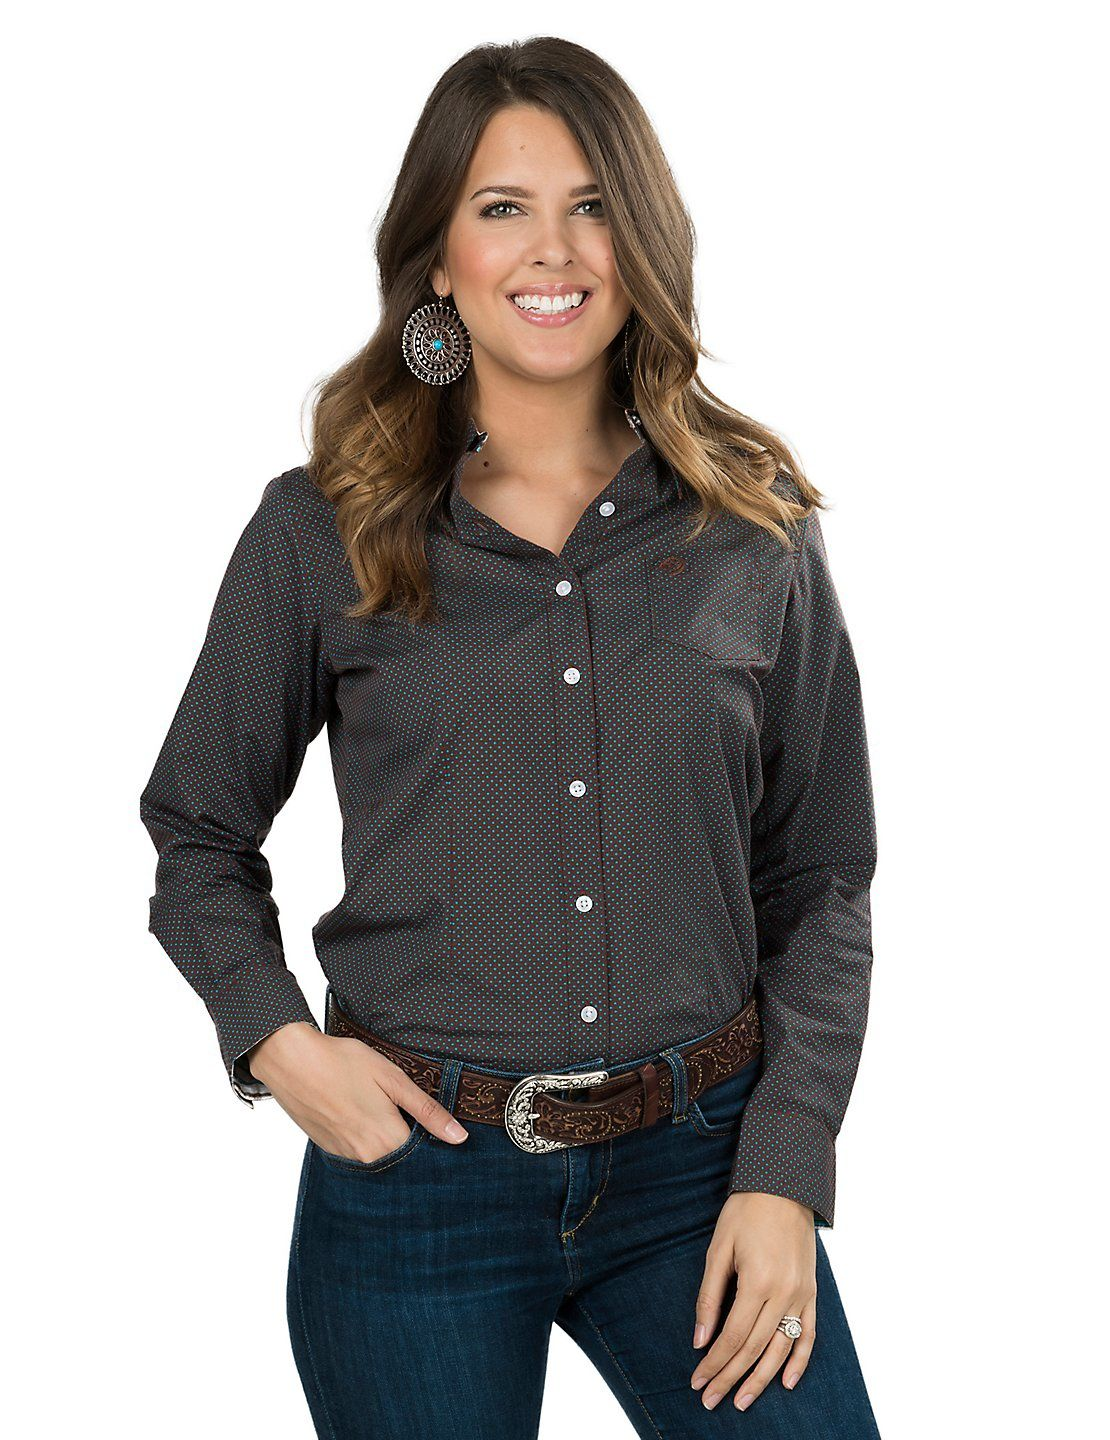 f9c653b13 George Strait by Wrangler Women's Brown with Turquoise Polka Dots Long  Sleeve Western Shirt | Cavender's